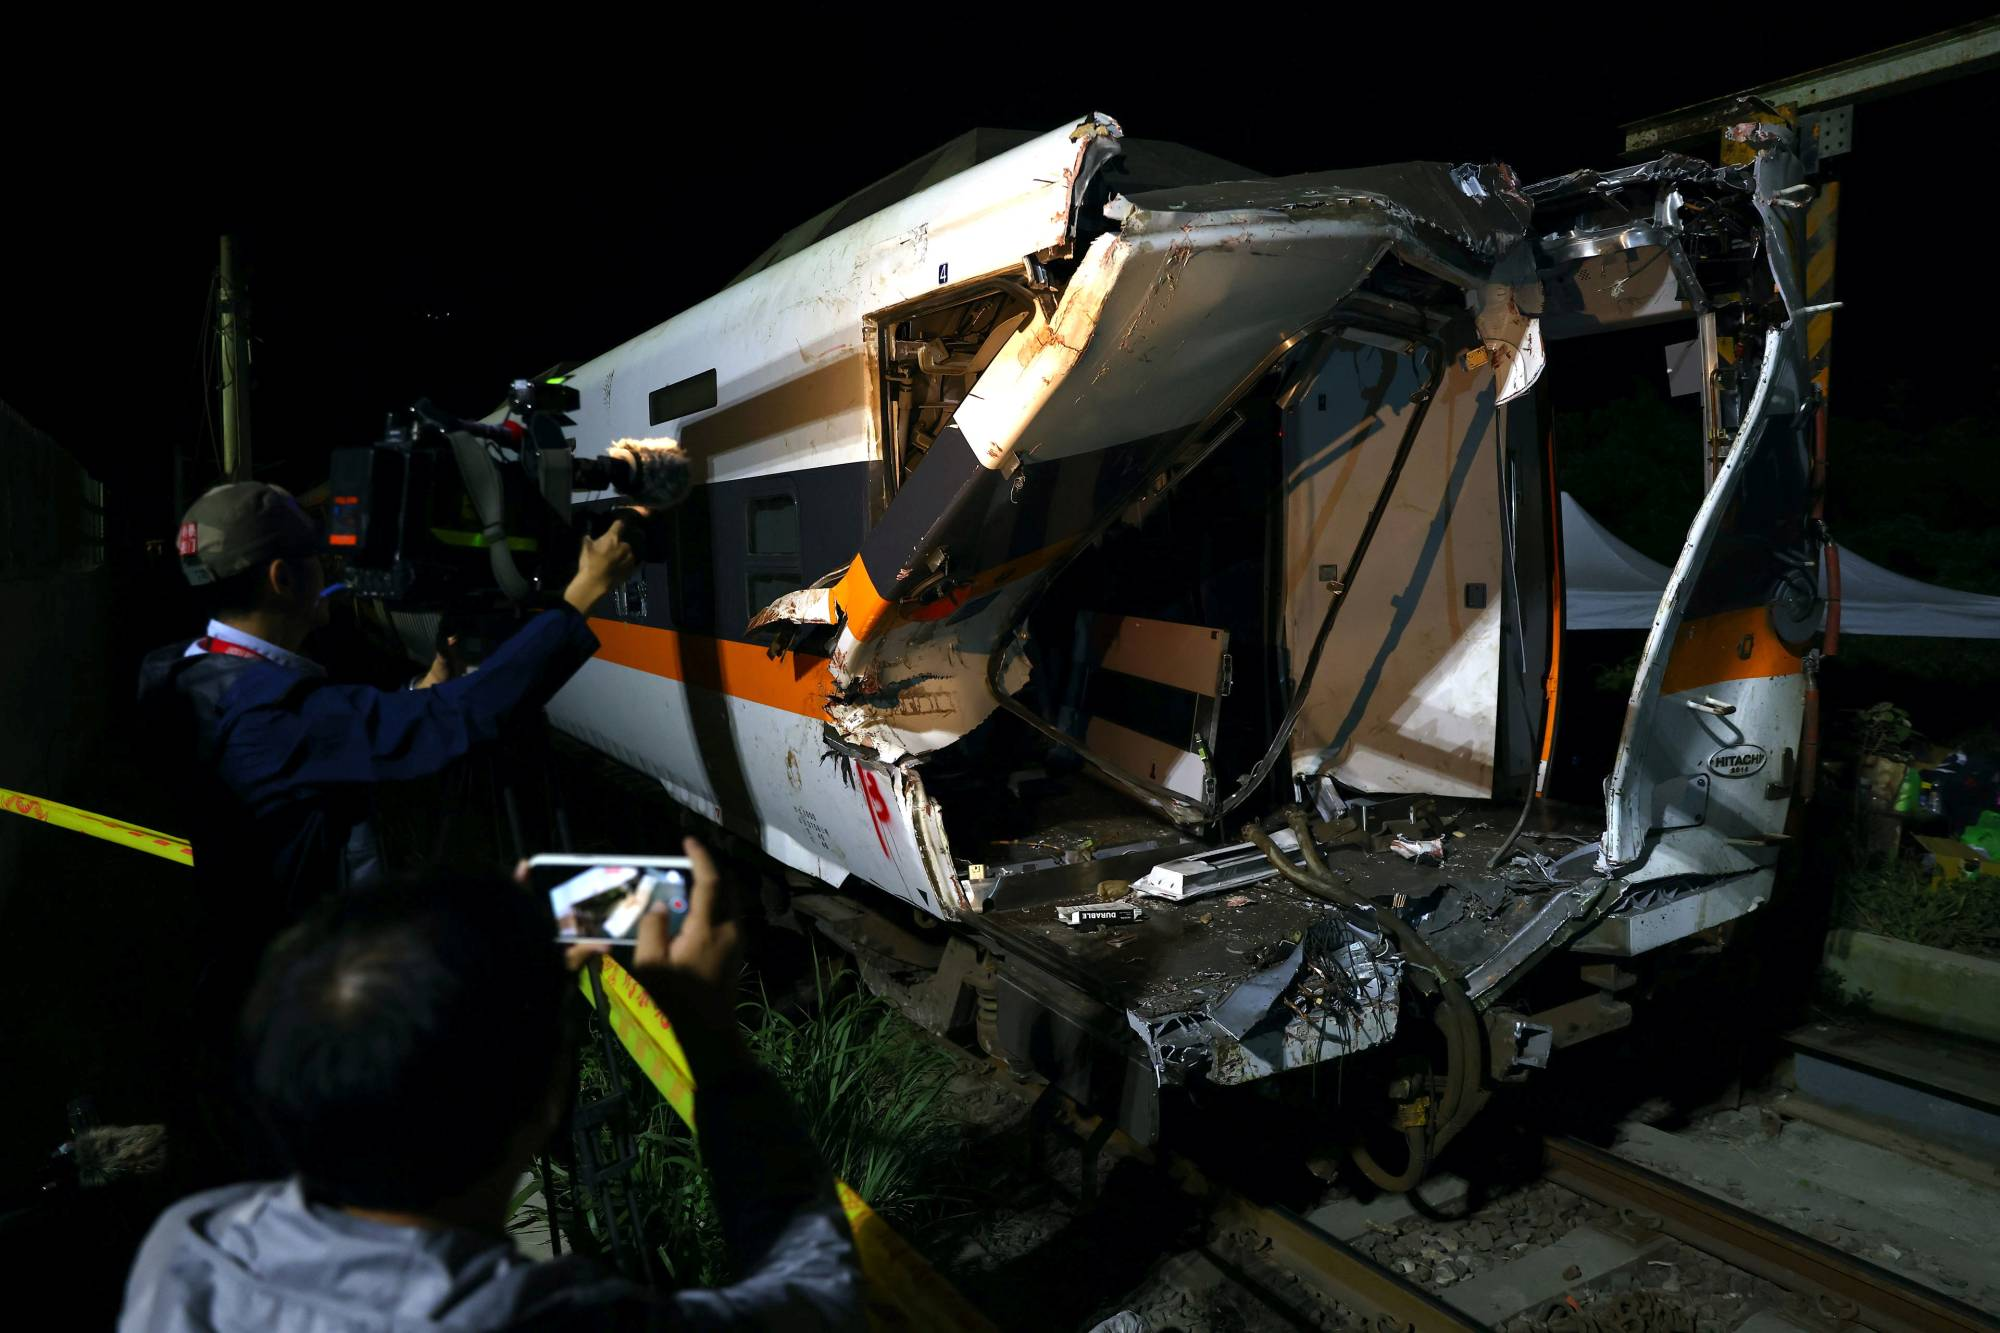 A damaged train carriage at the accident site on Sunday | REUTERS